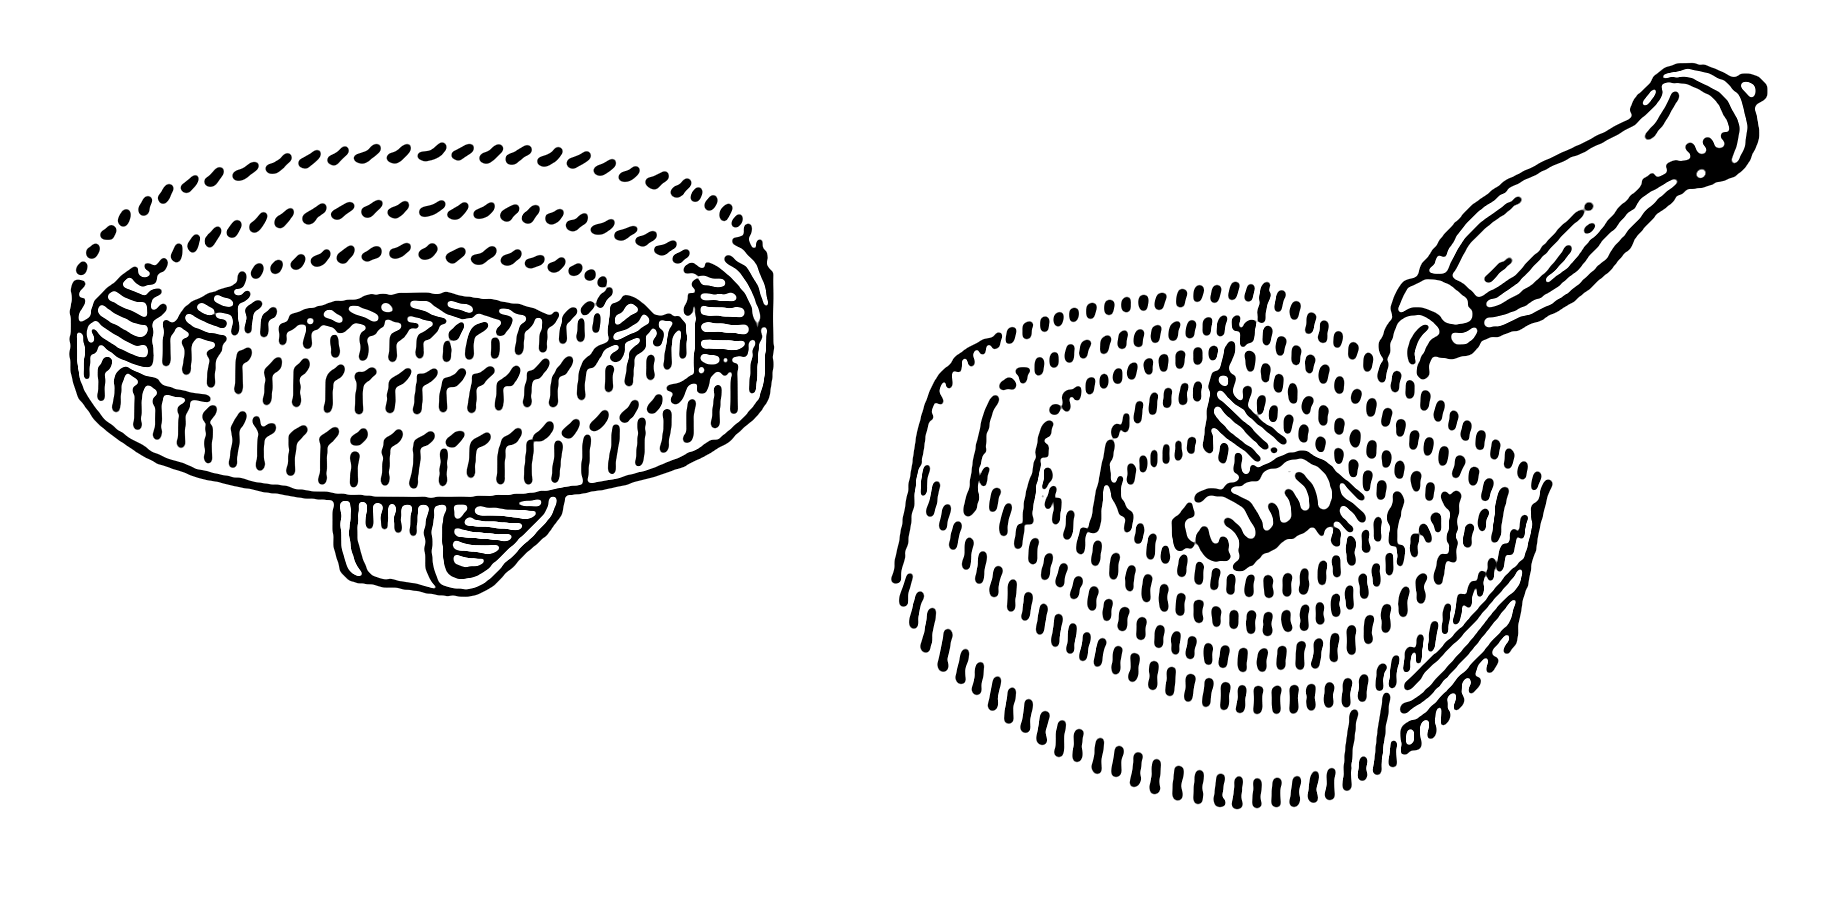 File:Currycombs (PSF).png - Wikimedia Commons